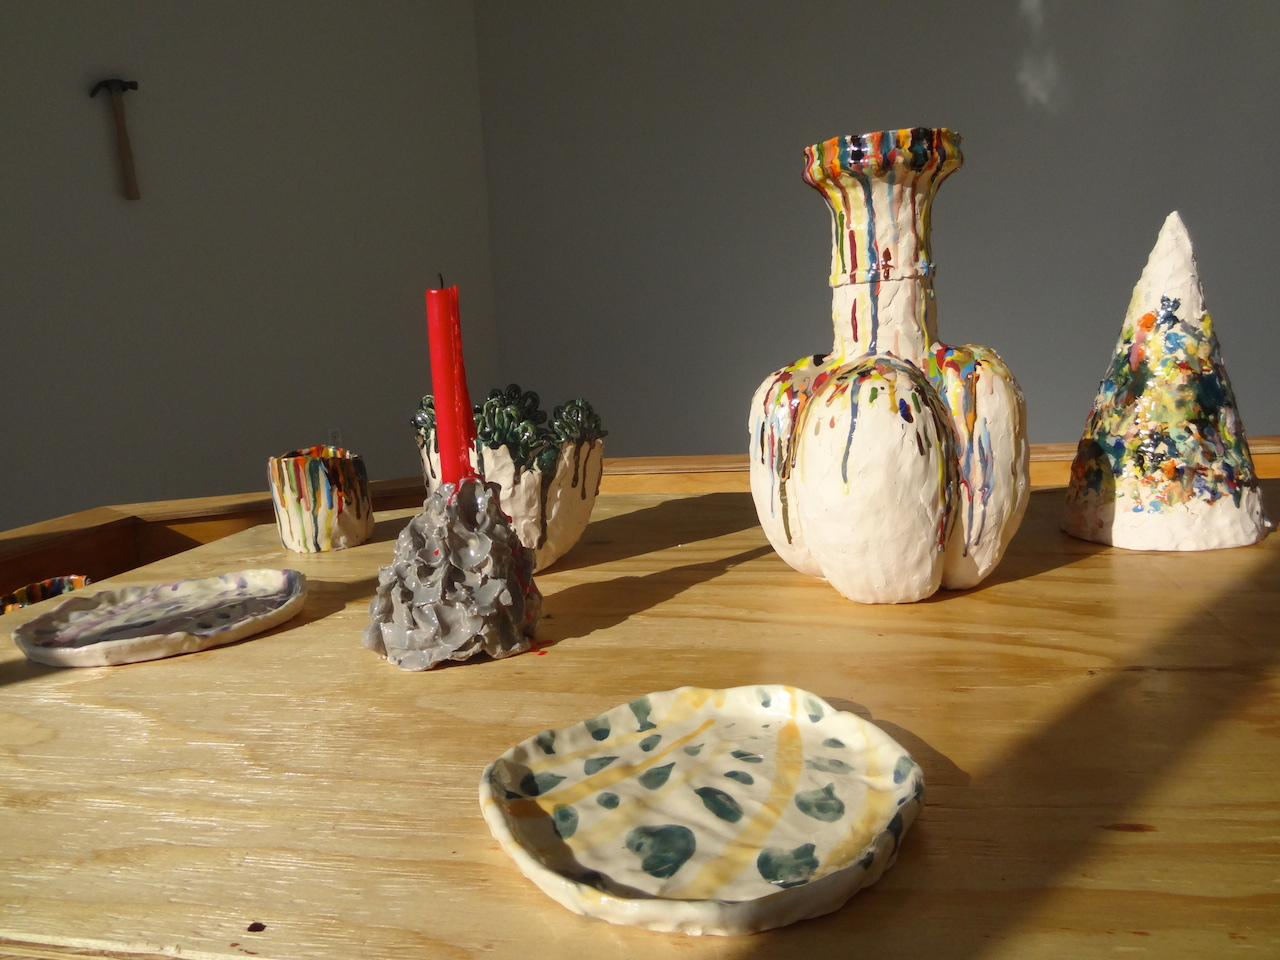 Ceramic sculptures by Nicholas Nyland, presented by Spaceworks, at the Vazquez Building